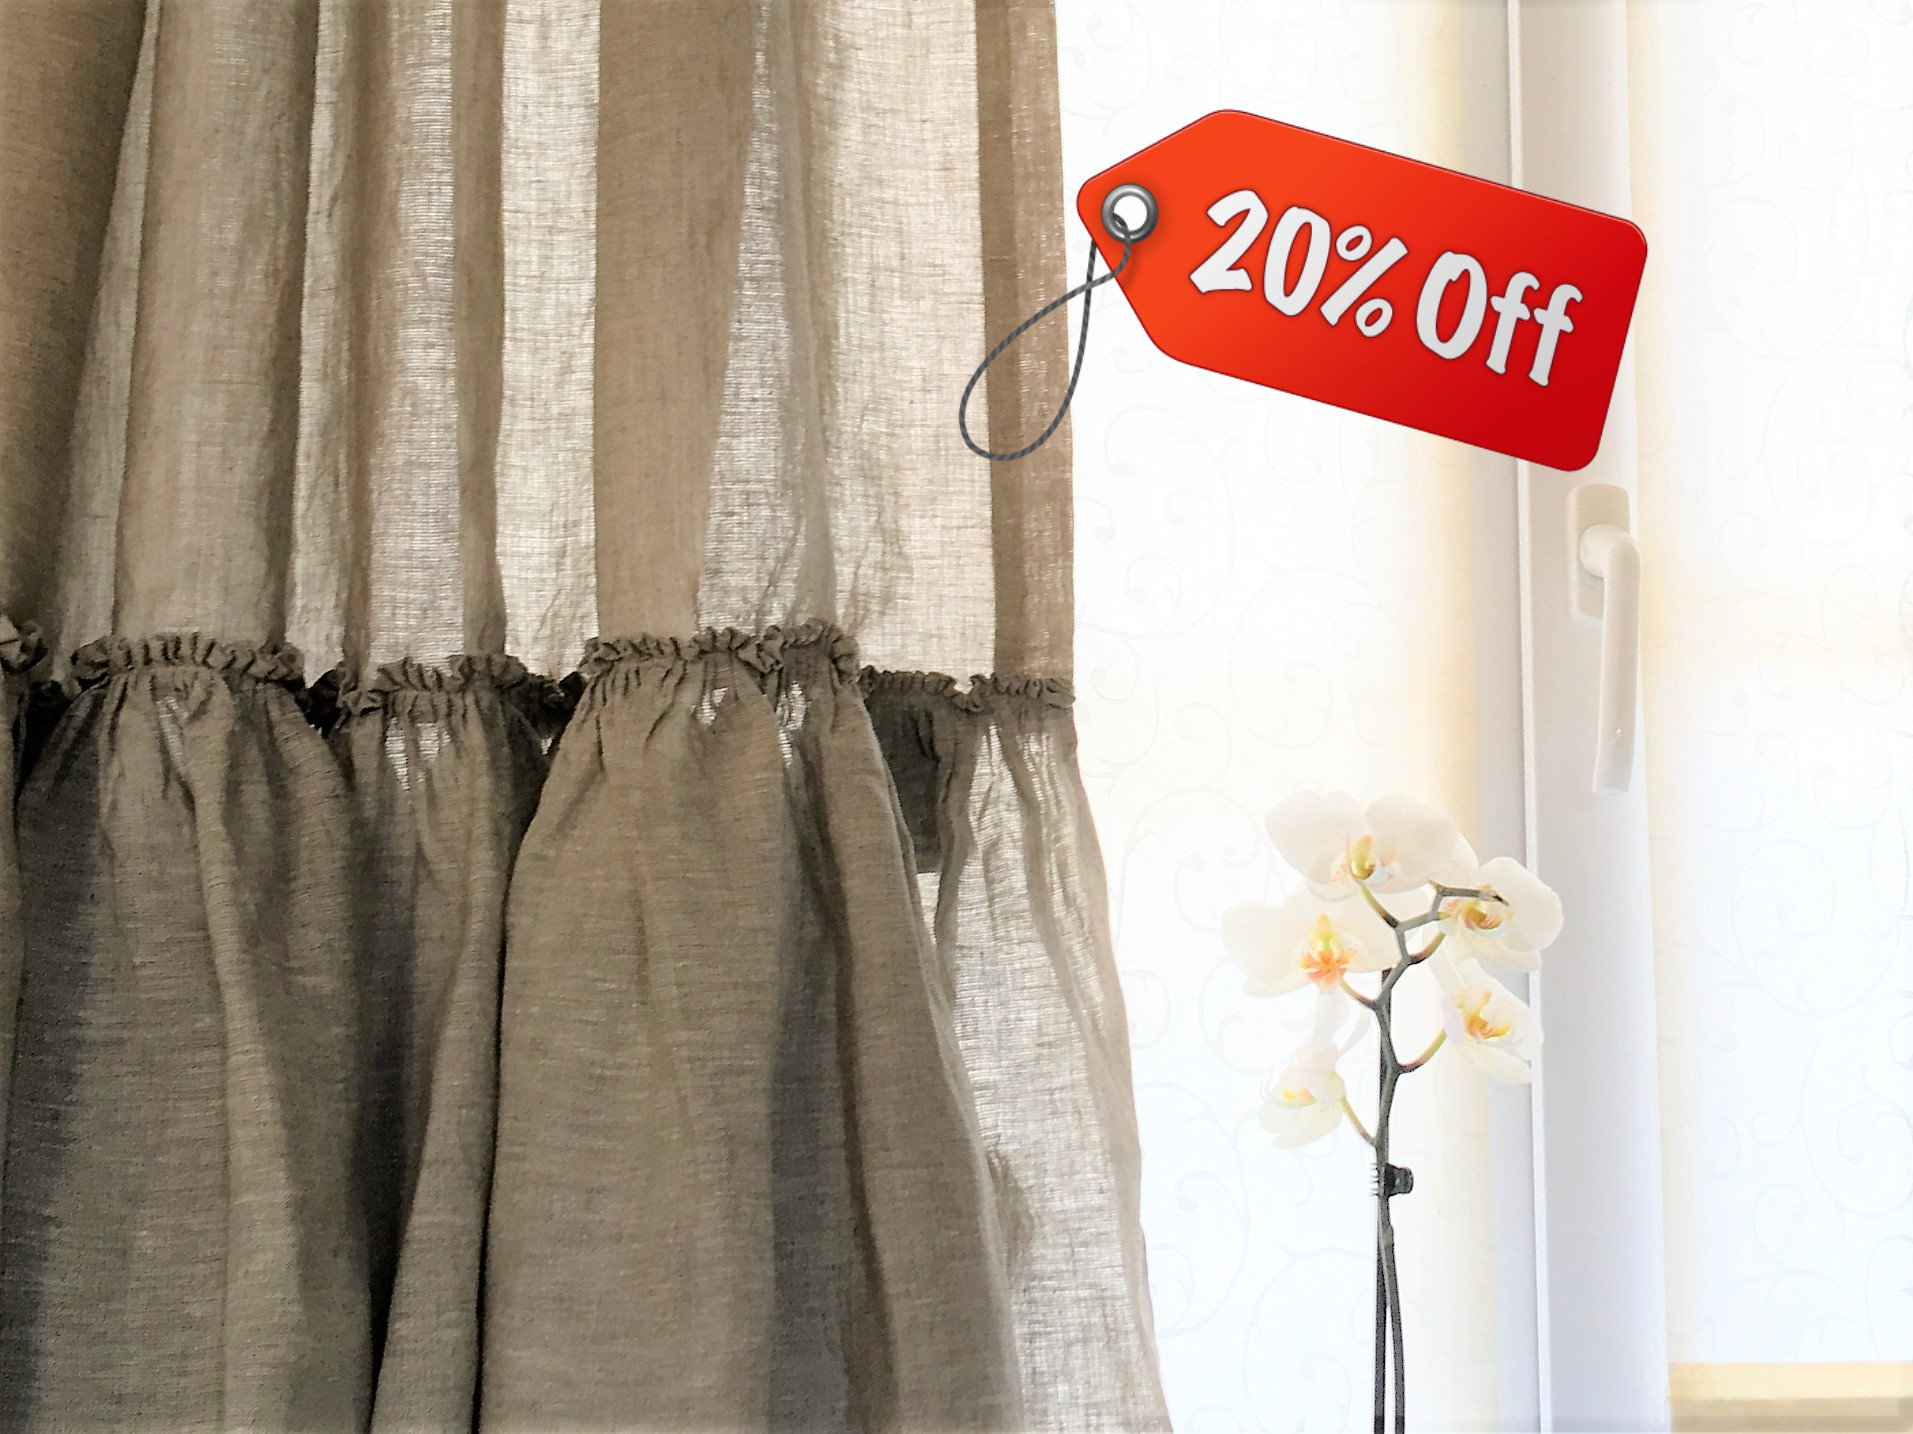 Linen Kitchen Curtains Set Ruffle Farmhouse Curtains Linen Cafe Curtain Shabby Chic Curtains Intended For Signature French Linen Curtain Panels (View 20 of 30)